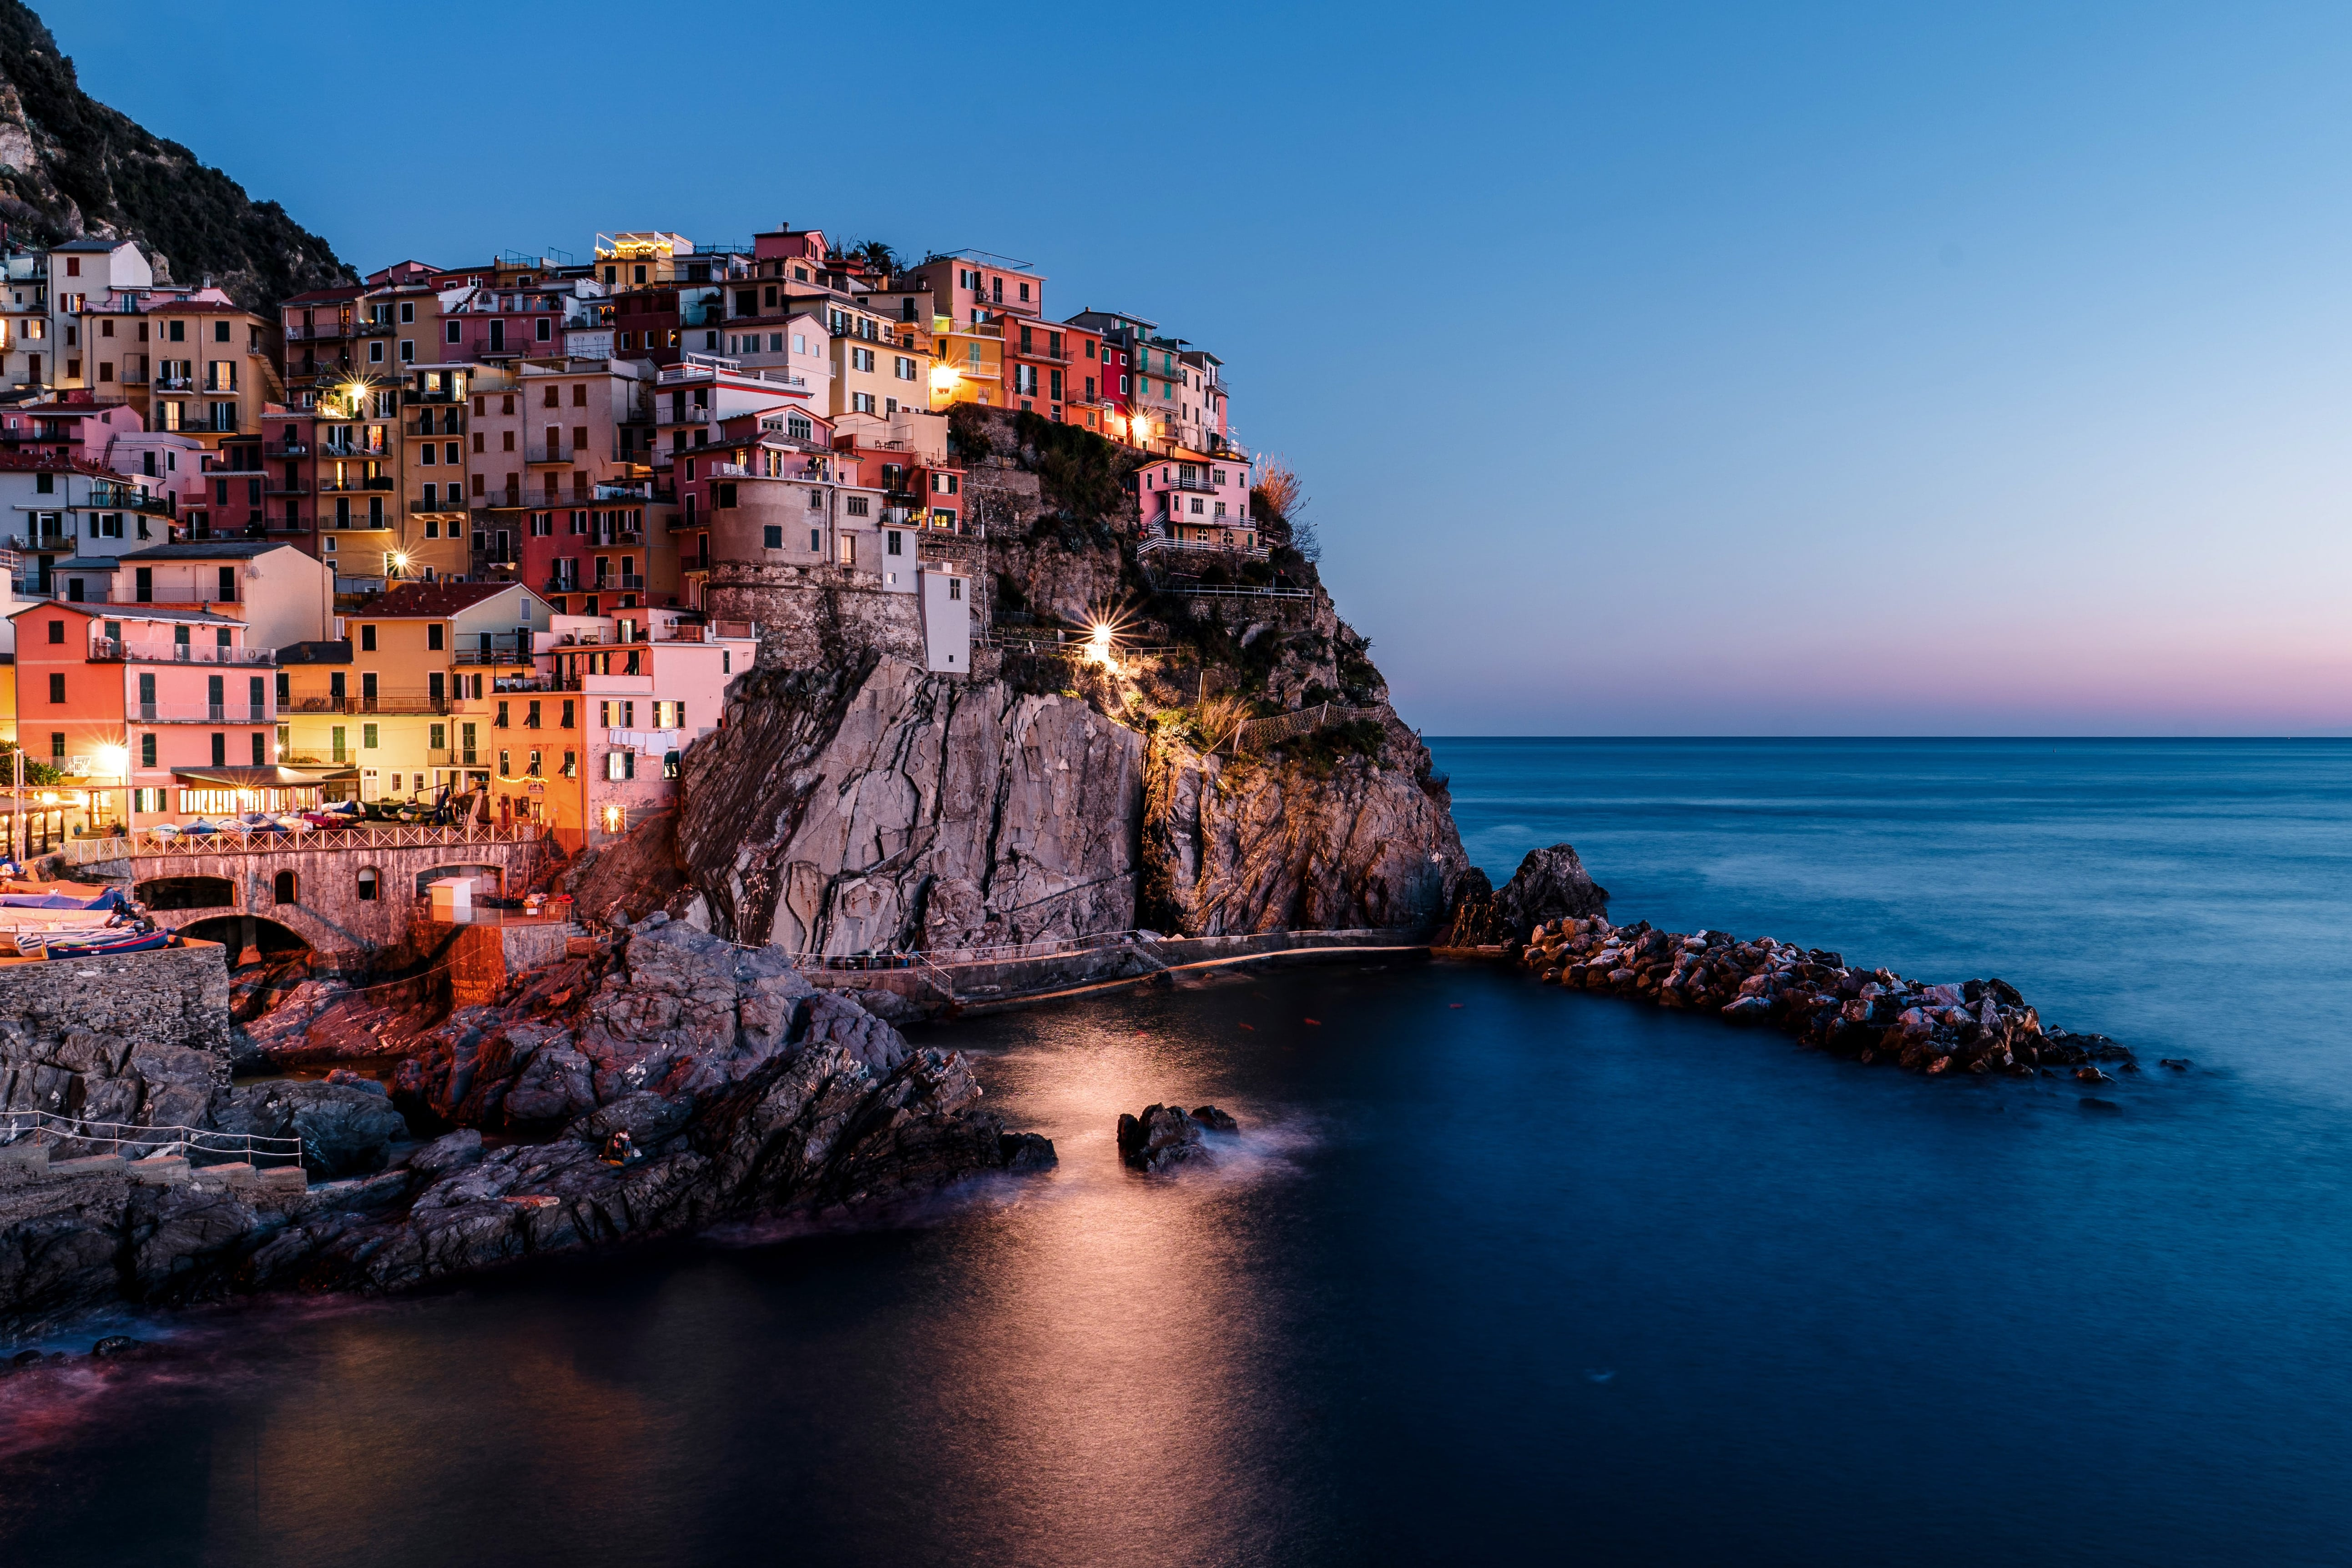 Cinque Terre is a stunning place to visit in Italy